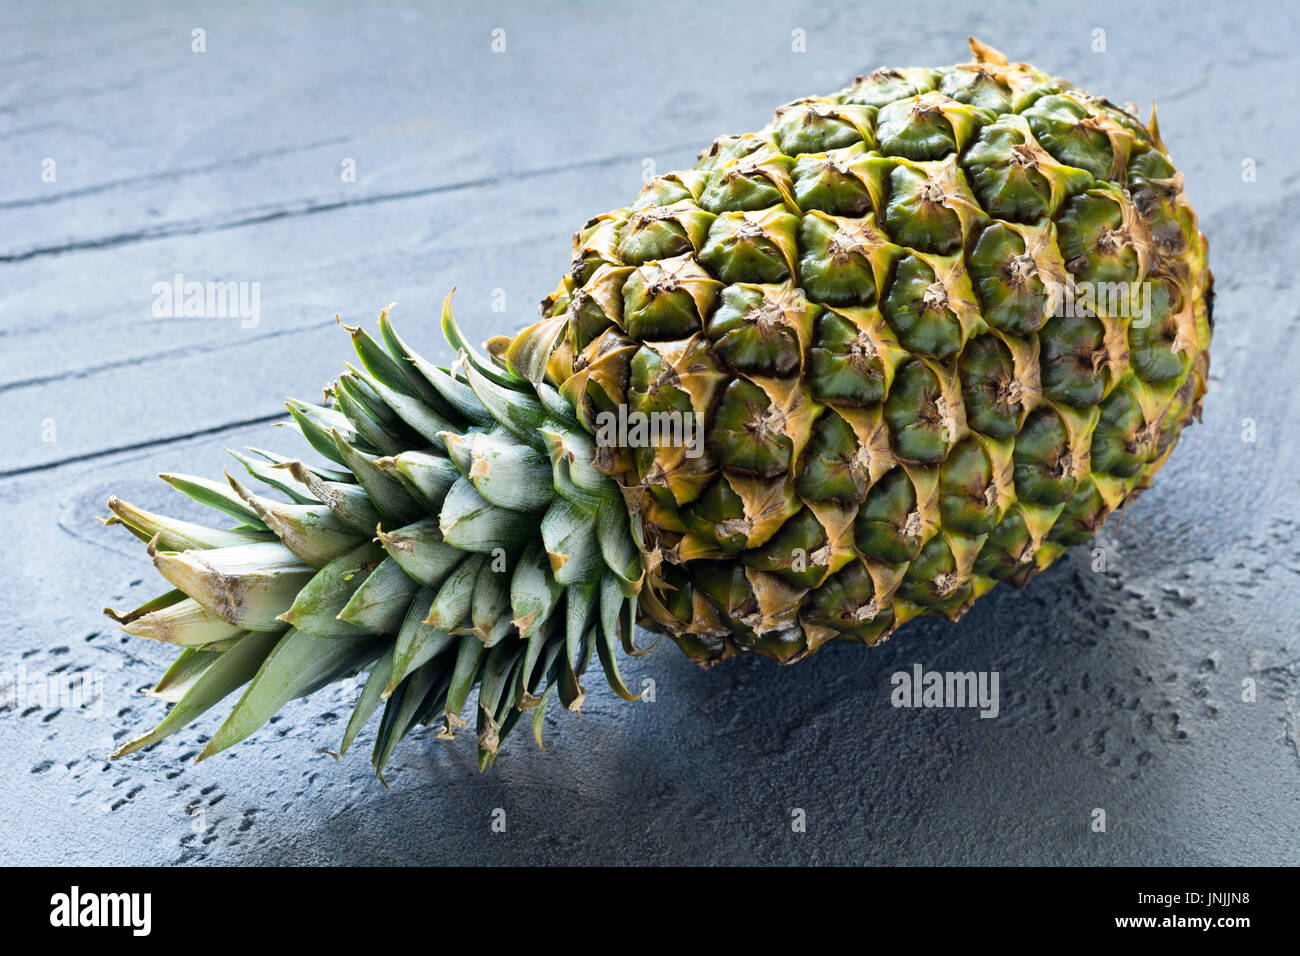 Fresh pineapple, juicy ripe pineapple fruit - Stock Image